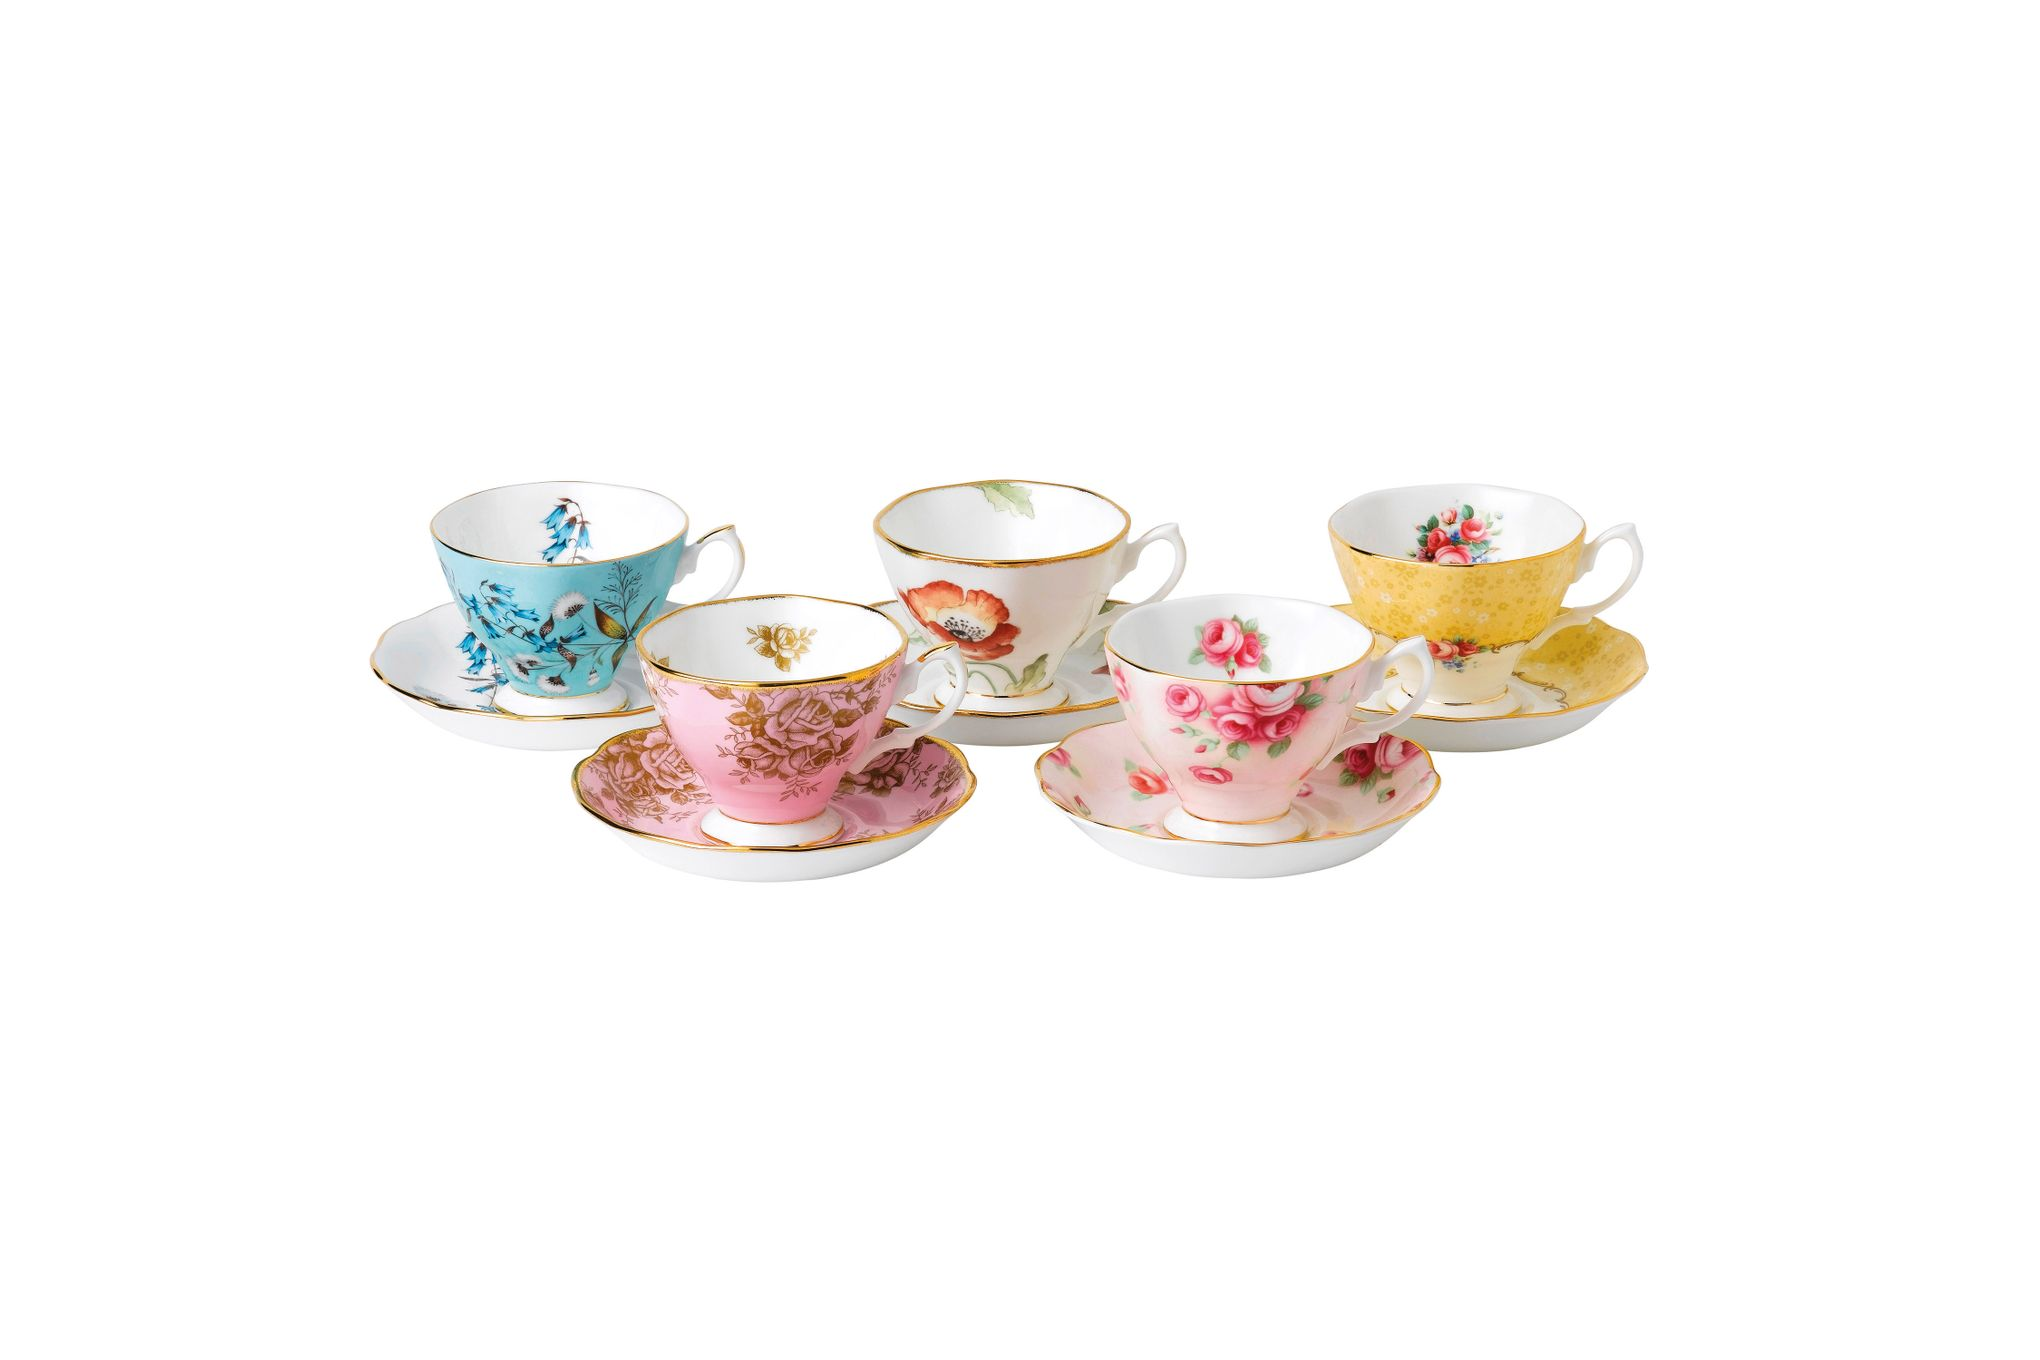 Royal Albert 100 Years of Royal Albert Set of Teacups and Saucers Boxed Set of 5, 1950-1990 thumb 1